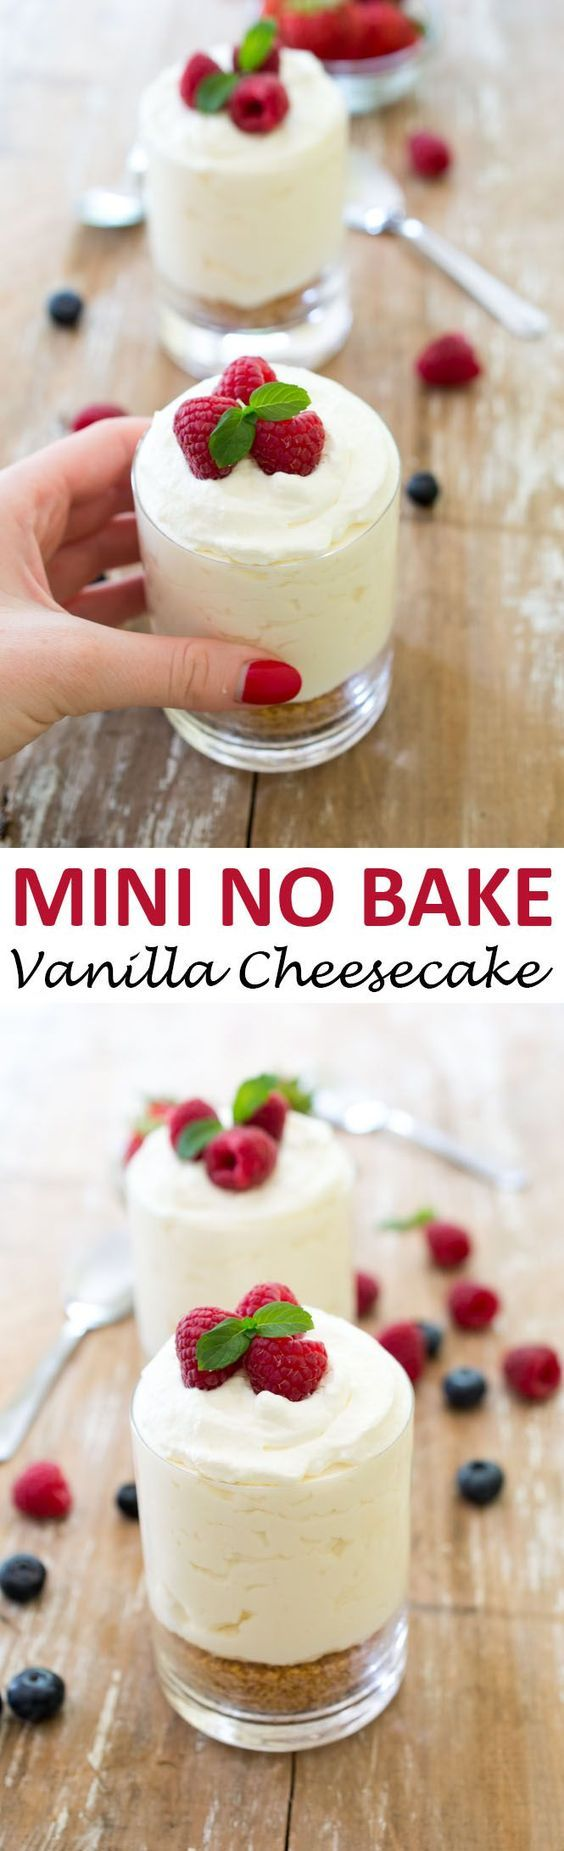 Individual No Bake Vanilla Cheesecake. A super easy no bake dessert that takes less than 15 minutes prep time and only 7 ingredients! | chefsavvy.com #recipe #vanilla #cheesecake #mini #nobake #dessert: